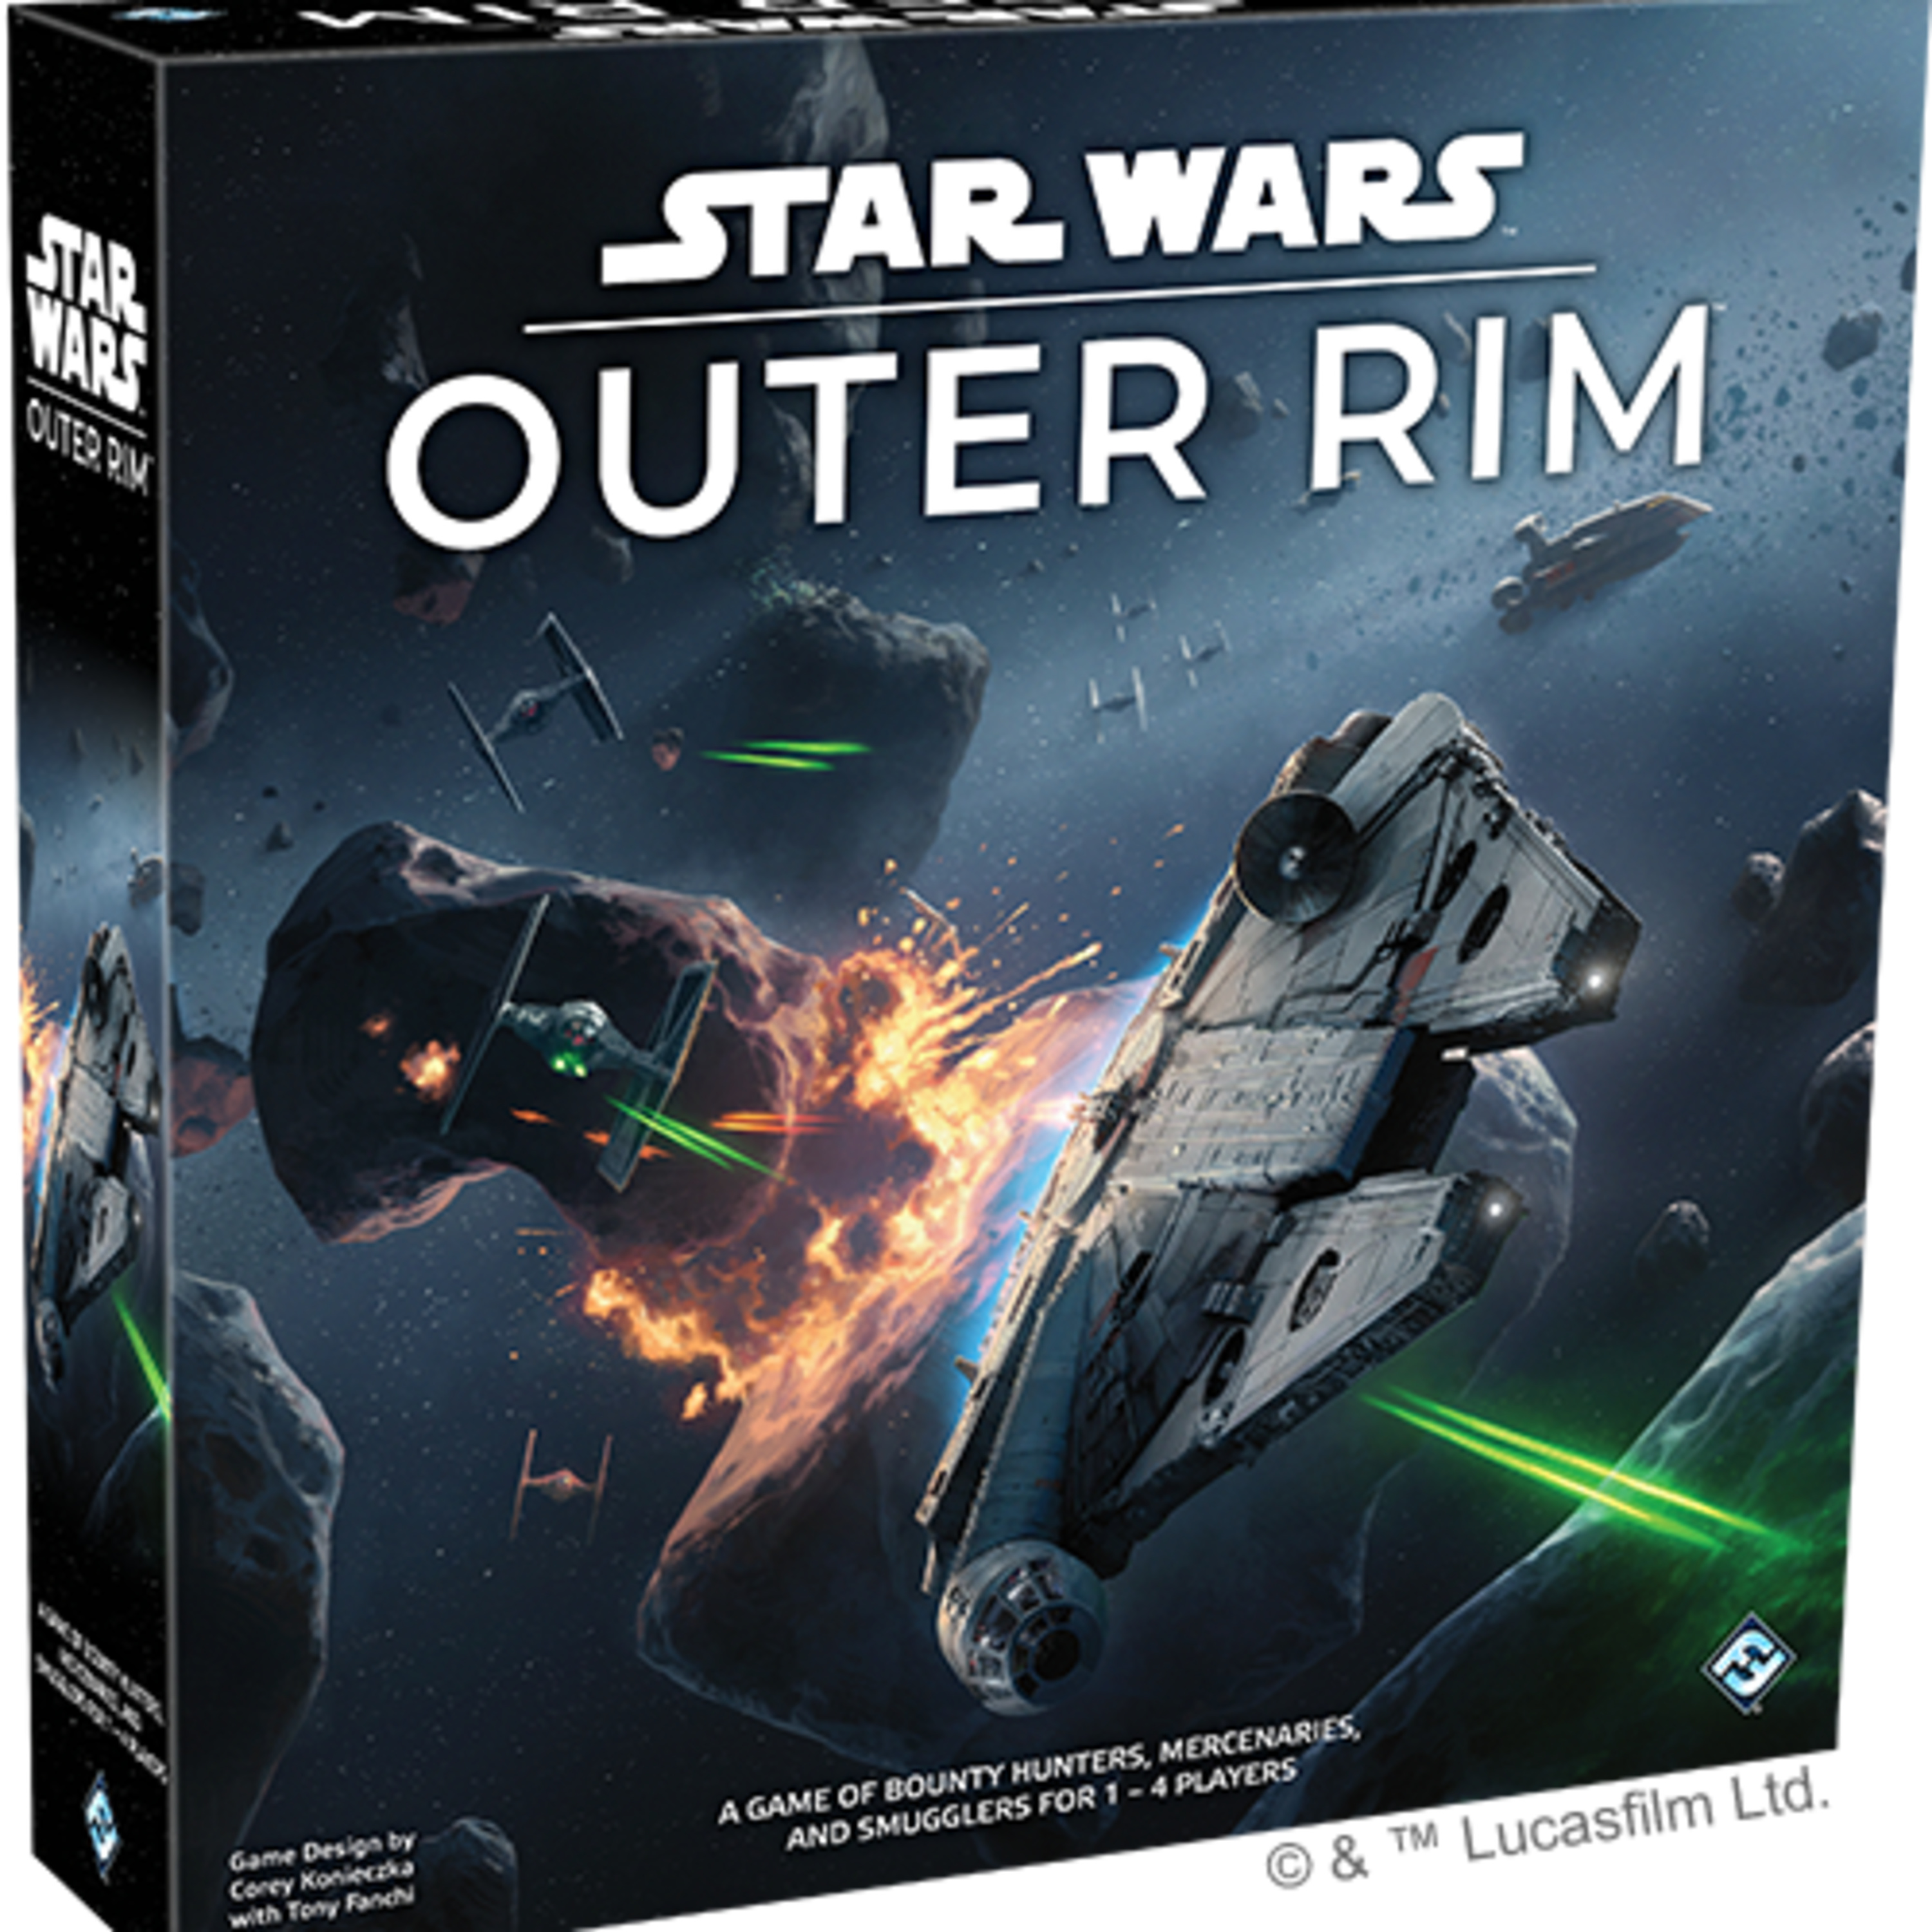 Episode 37 - Star Wars Outer Rim Review